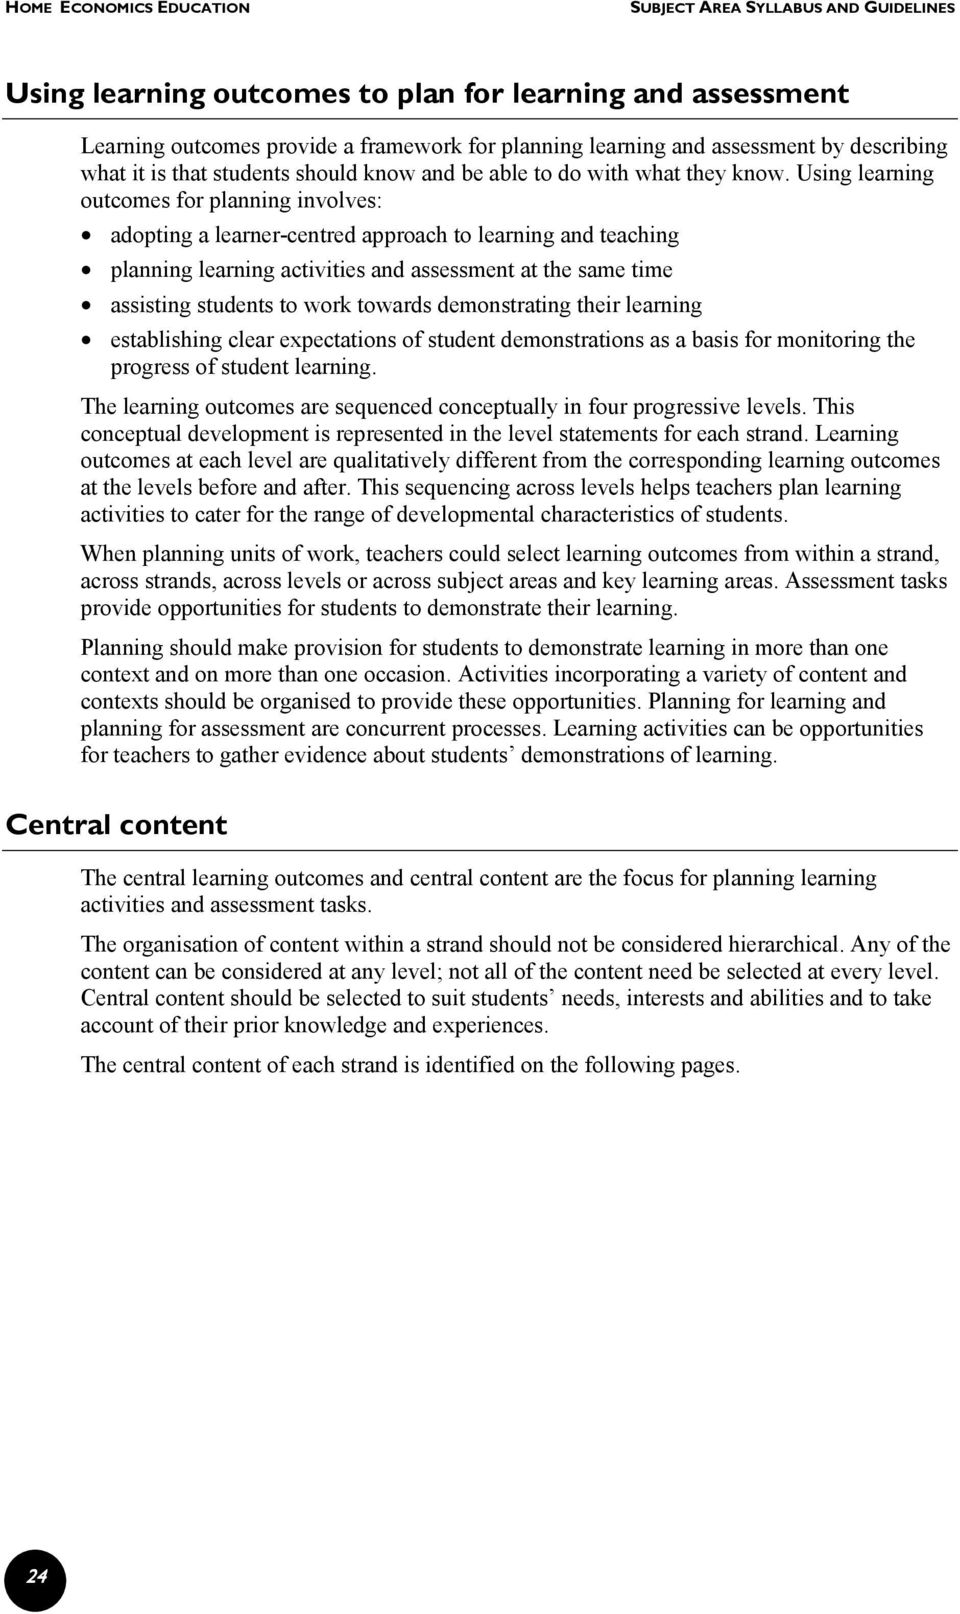 Using learning outcomes for planning involves: adopting a learner-centred approach to learning and teaching planning learning activities and assessment at the same time assisting students to work